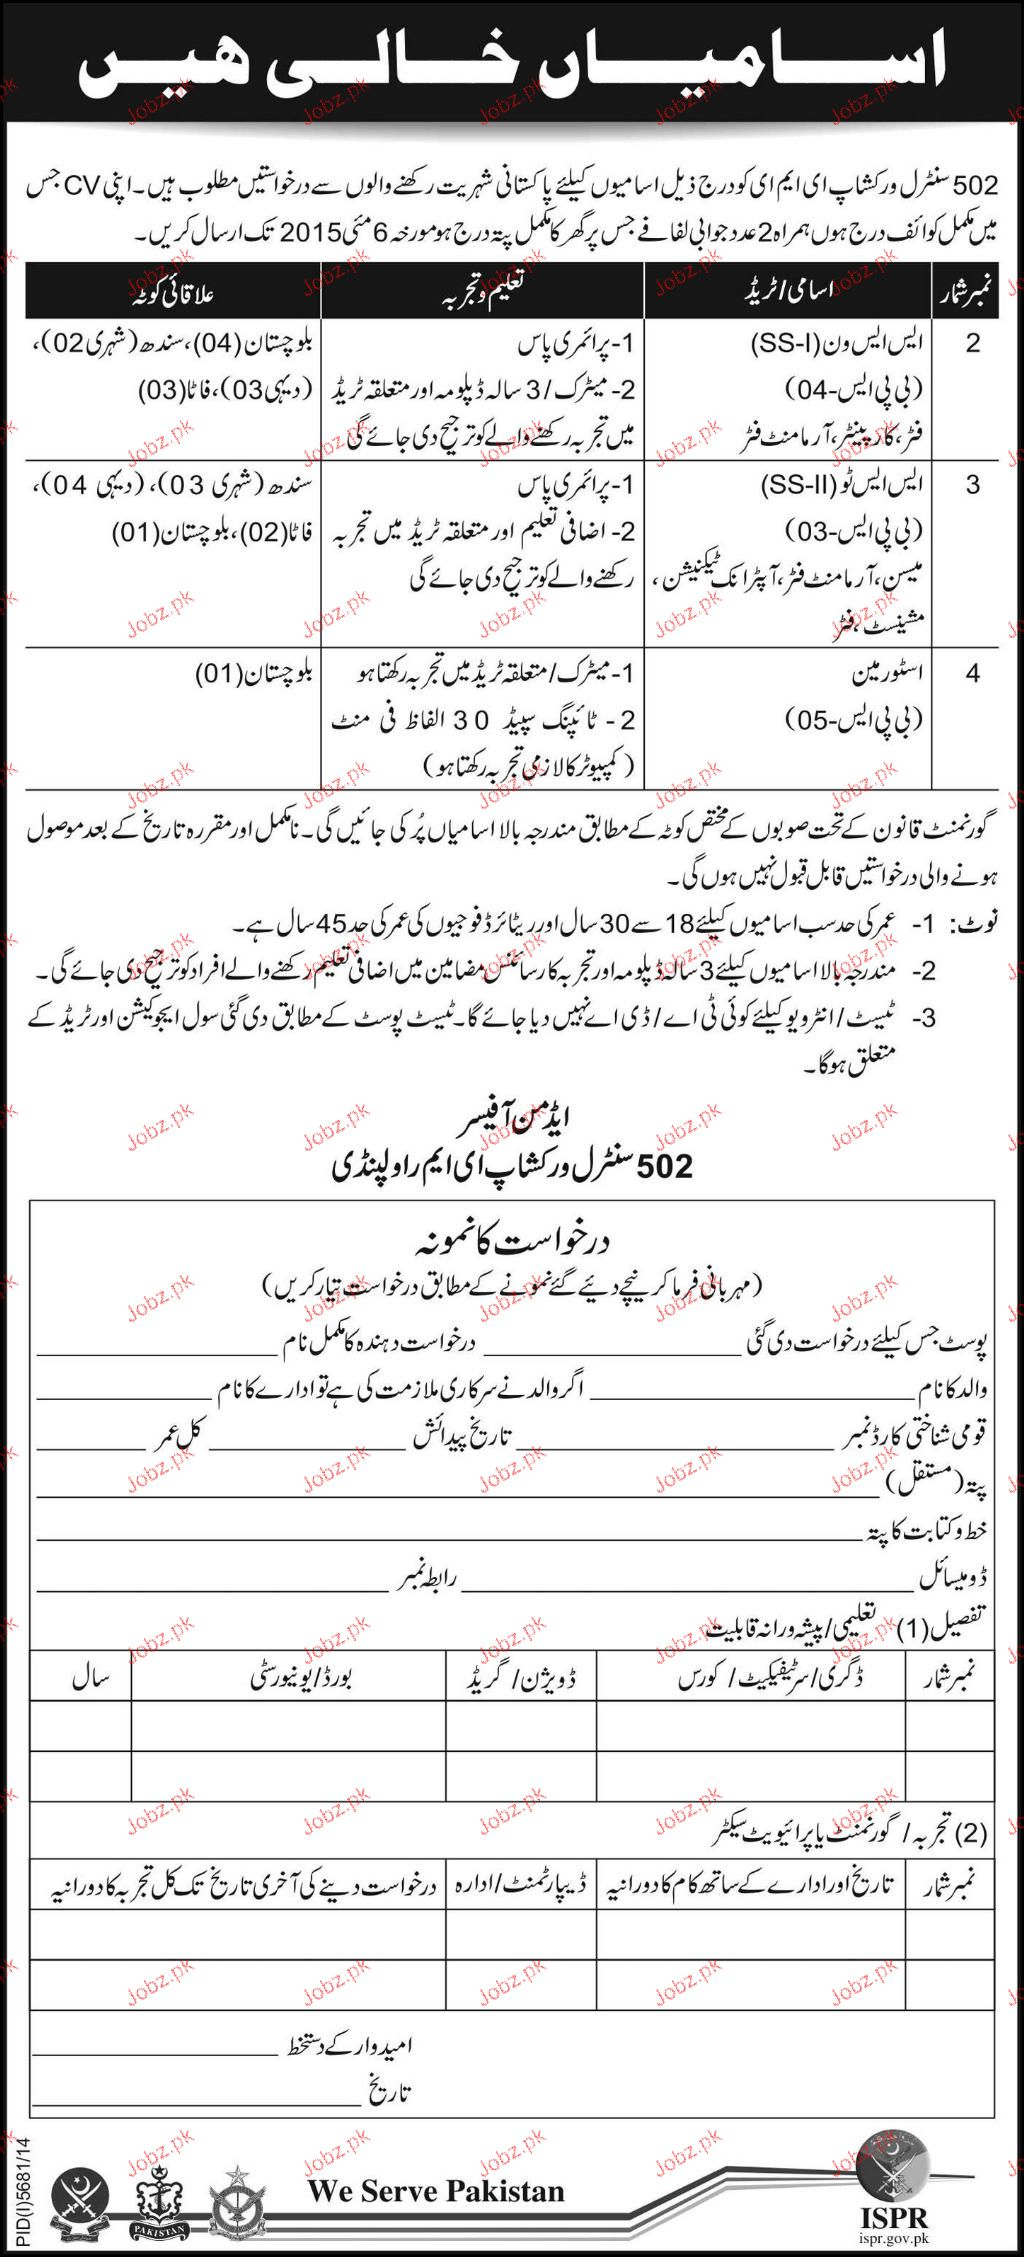 SS-I, SS-II, Storeman and Technicians Job in Pak Army